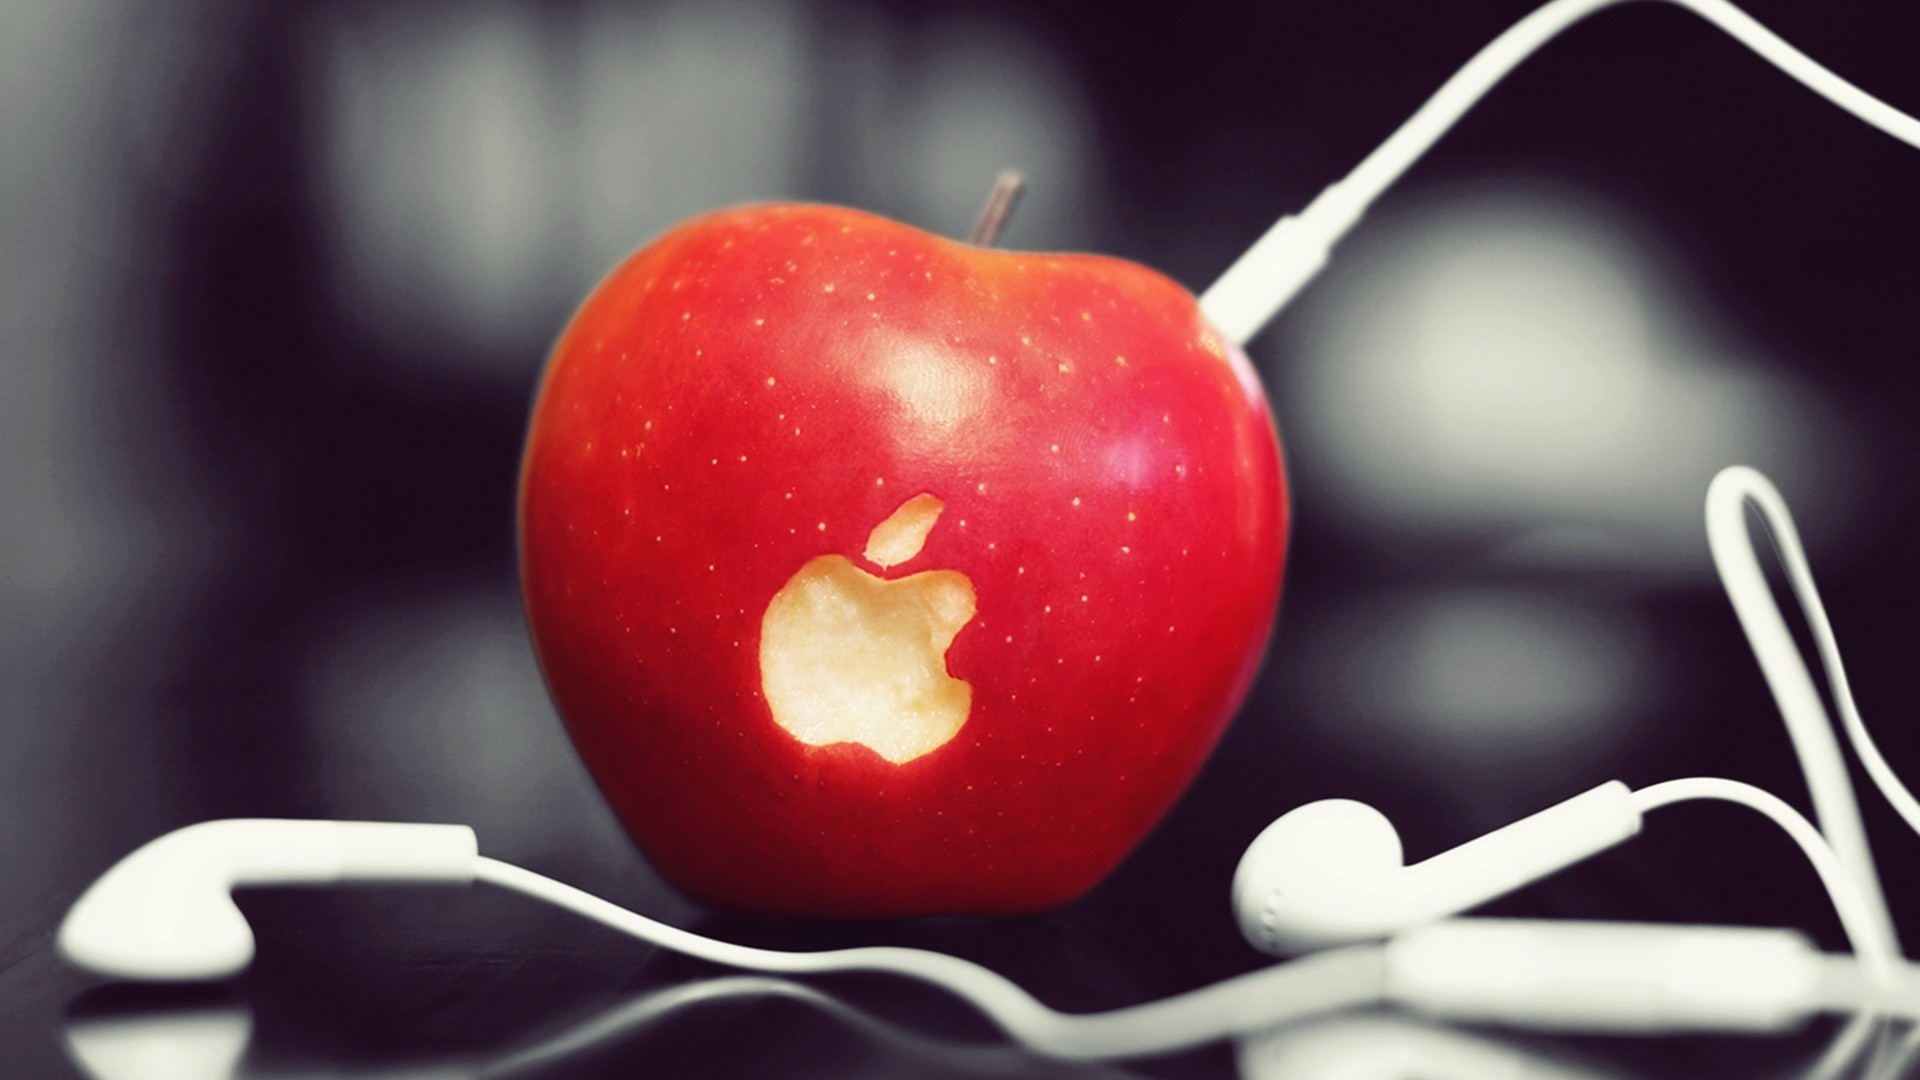 Apple Brand Image